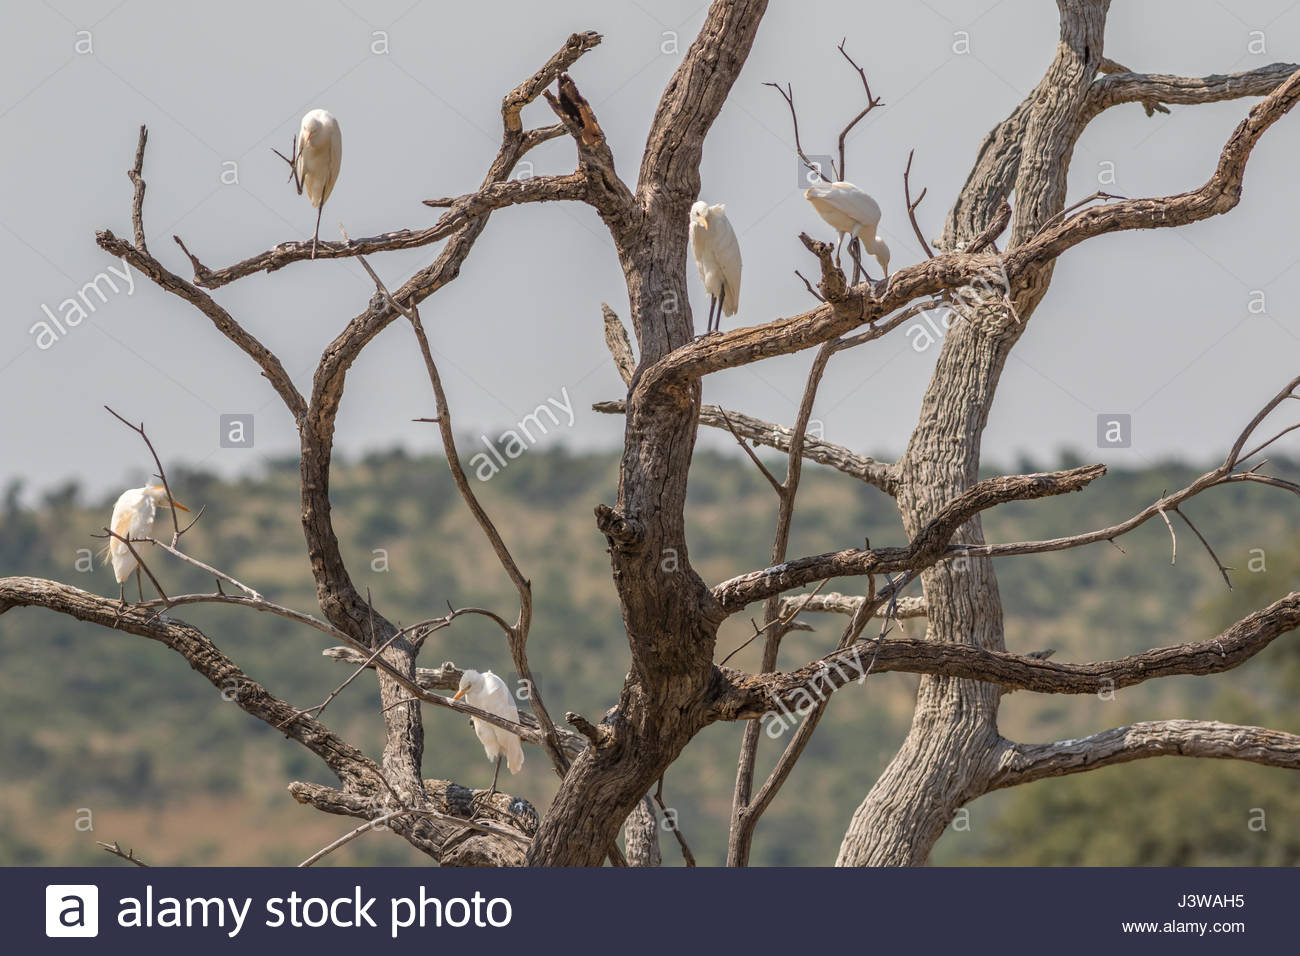 A flock of Western Cattle Egrets perched in the branches of a dead tree. - Stock Image